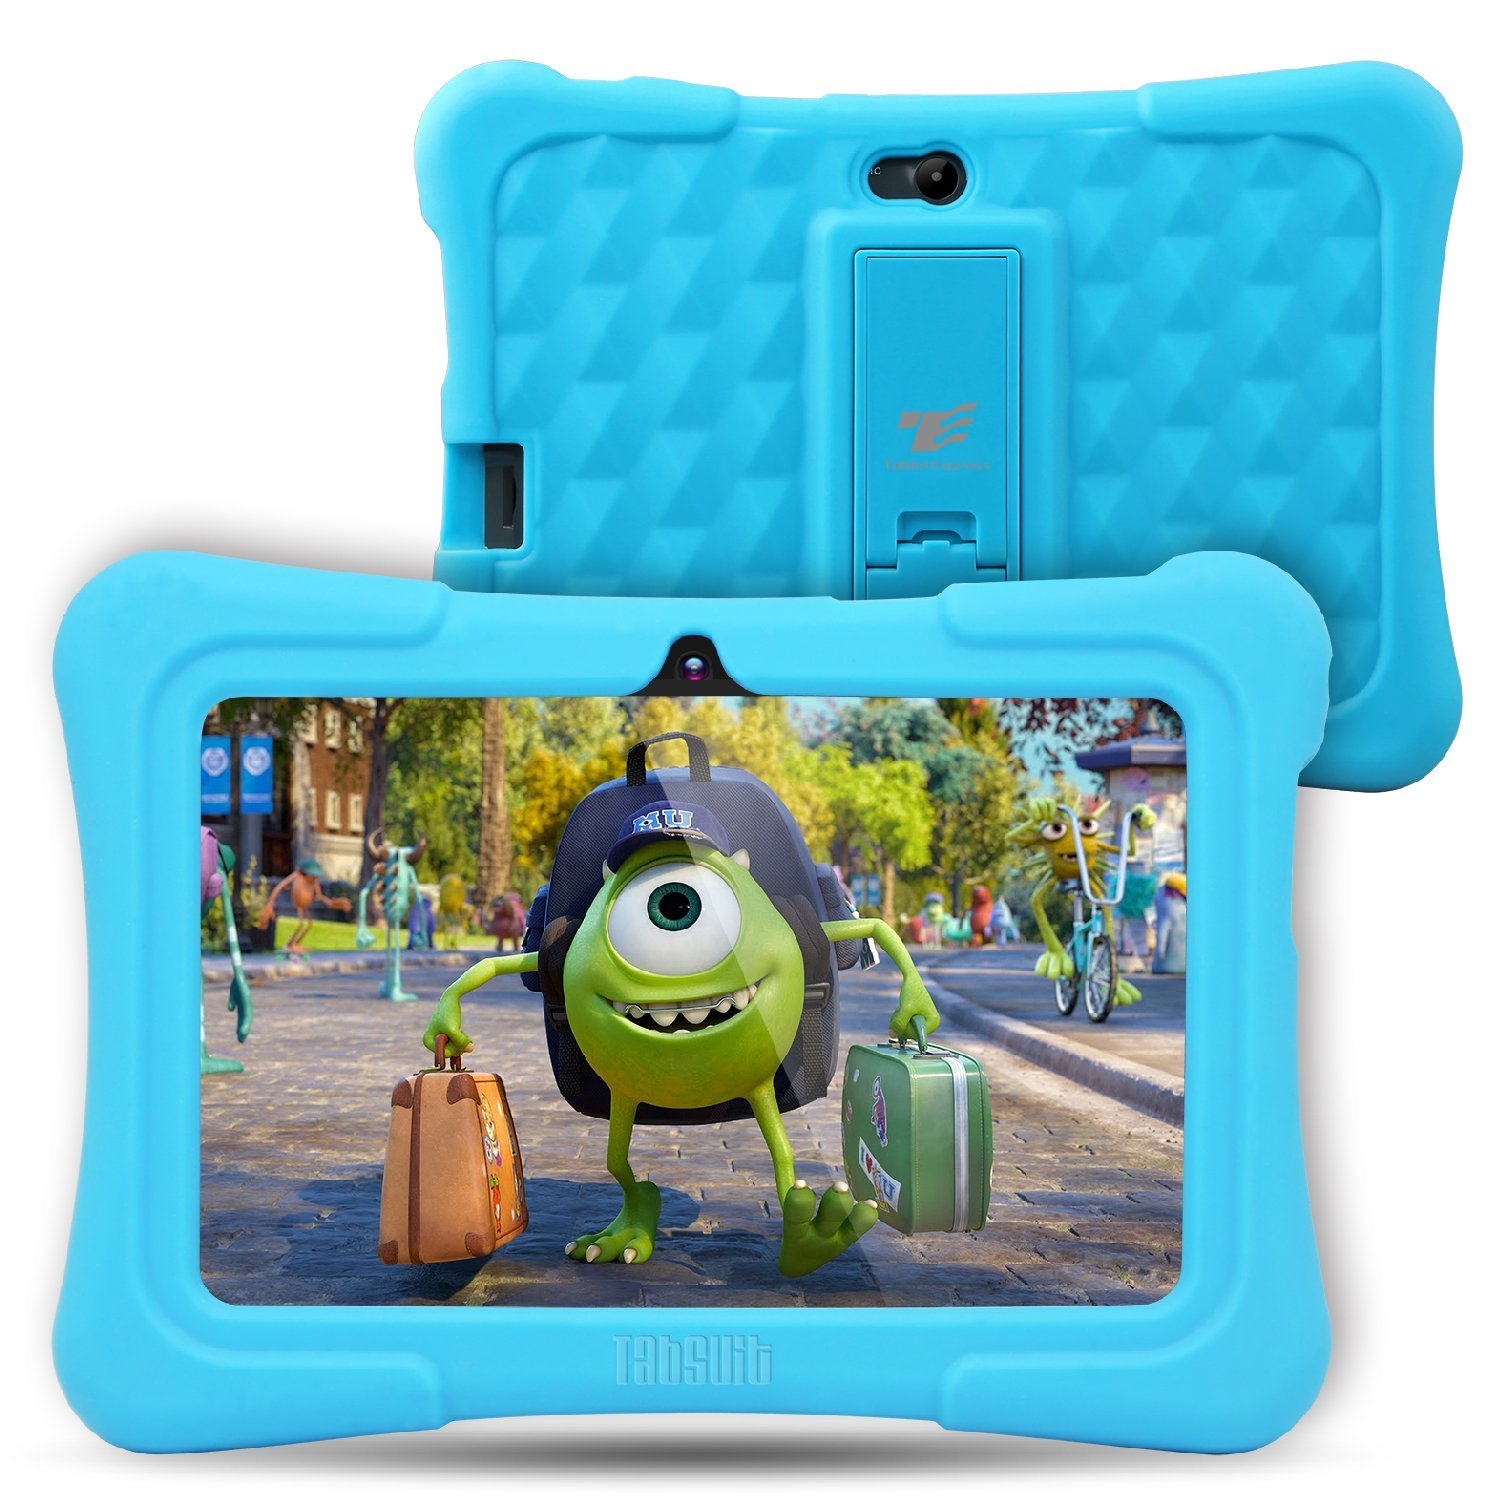 Dragon Touch Y88X Plus 7 inch Kids Tablet 2017 Disney Edition, Quad Core CPU, Android 5.1 Lollipop, IPS Display, Kidoz Pre-Installed-Blue